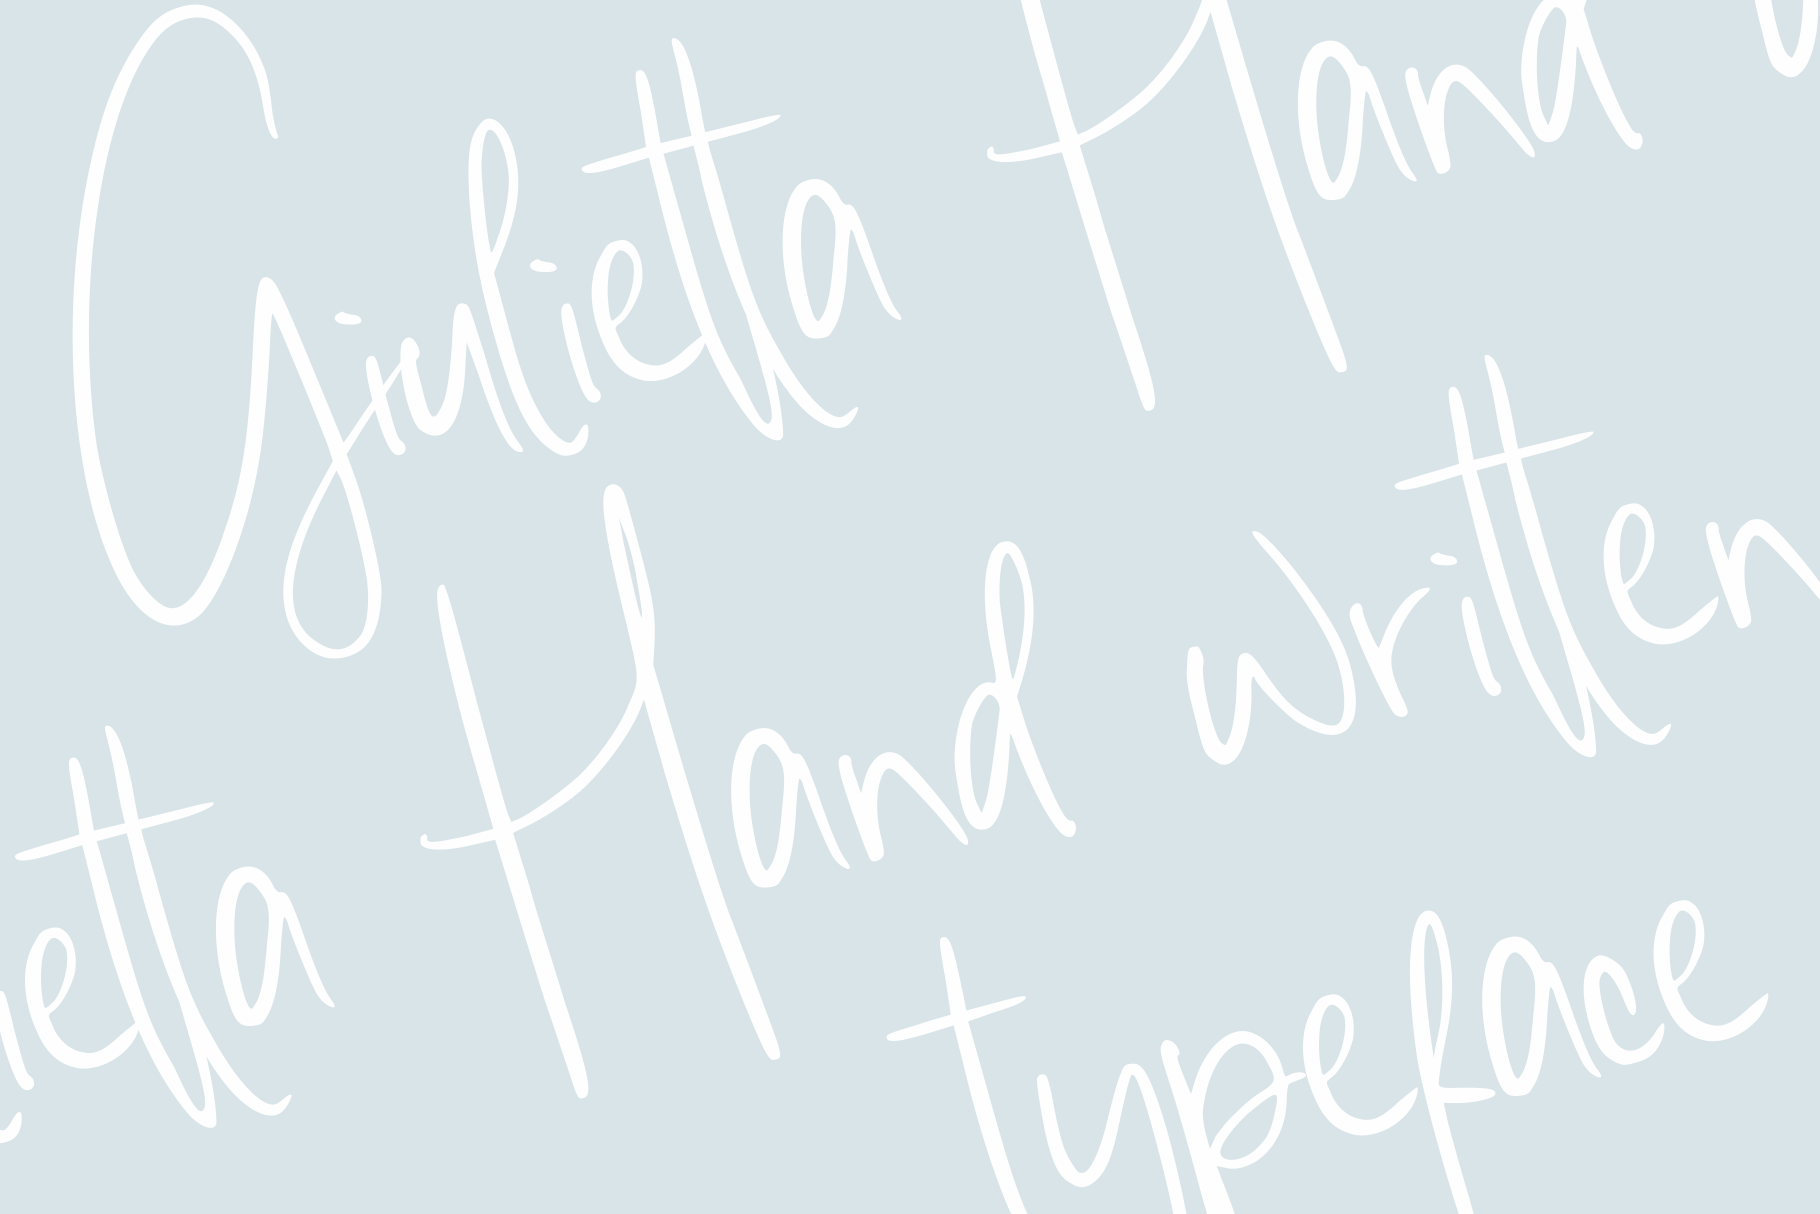 giulietta \ handwriting example image 2